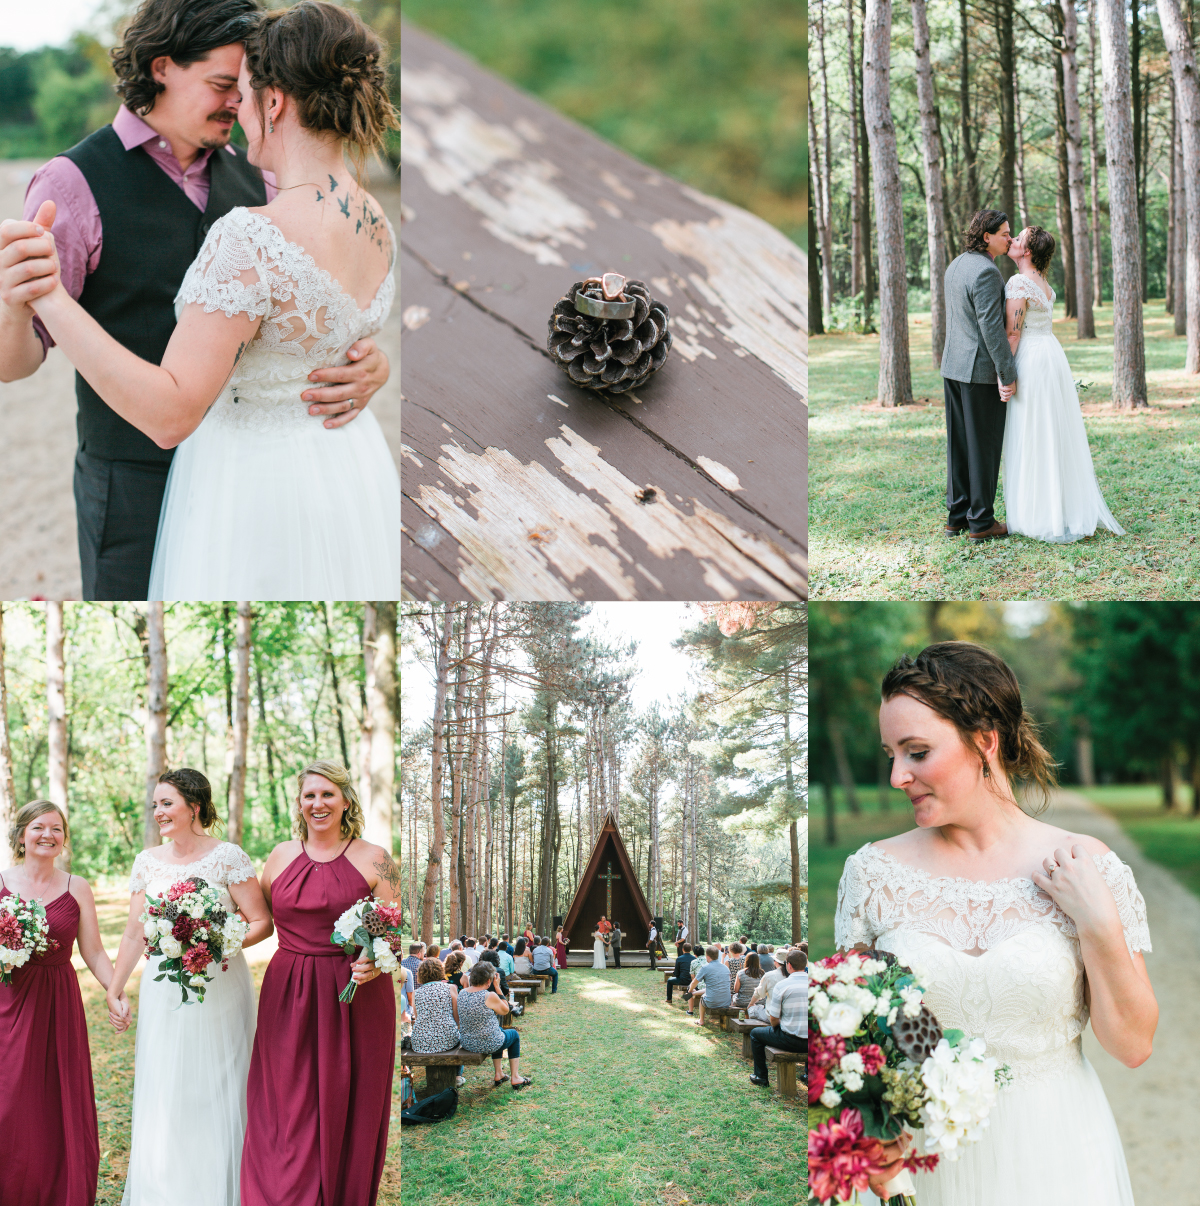 Rustic outdoor woodsy wedding in Lake City Minnesota